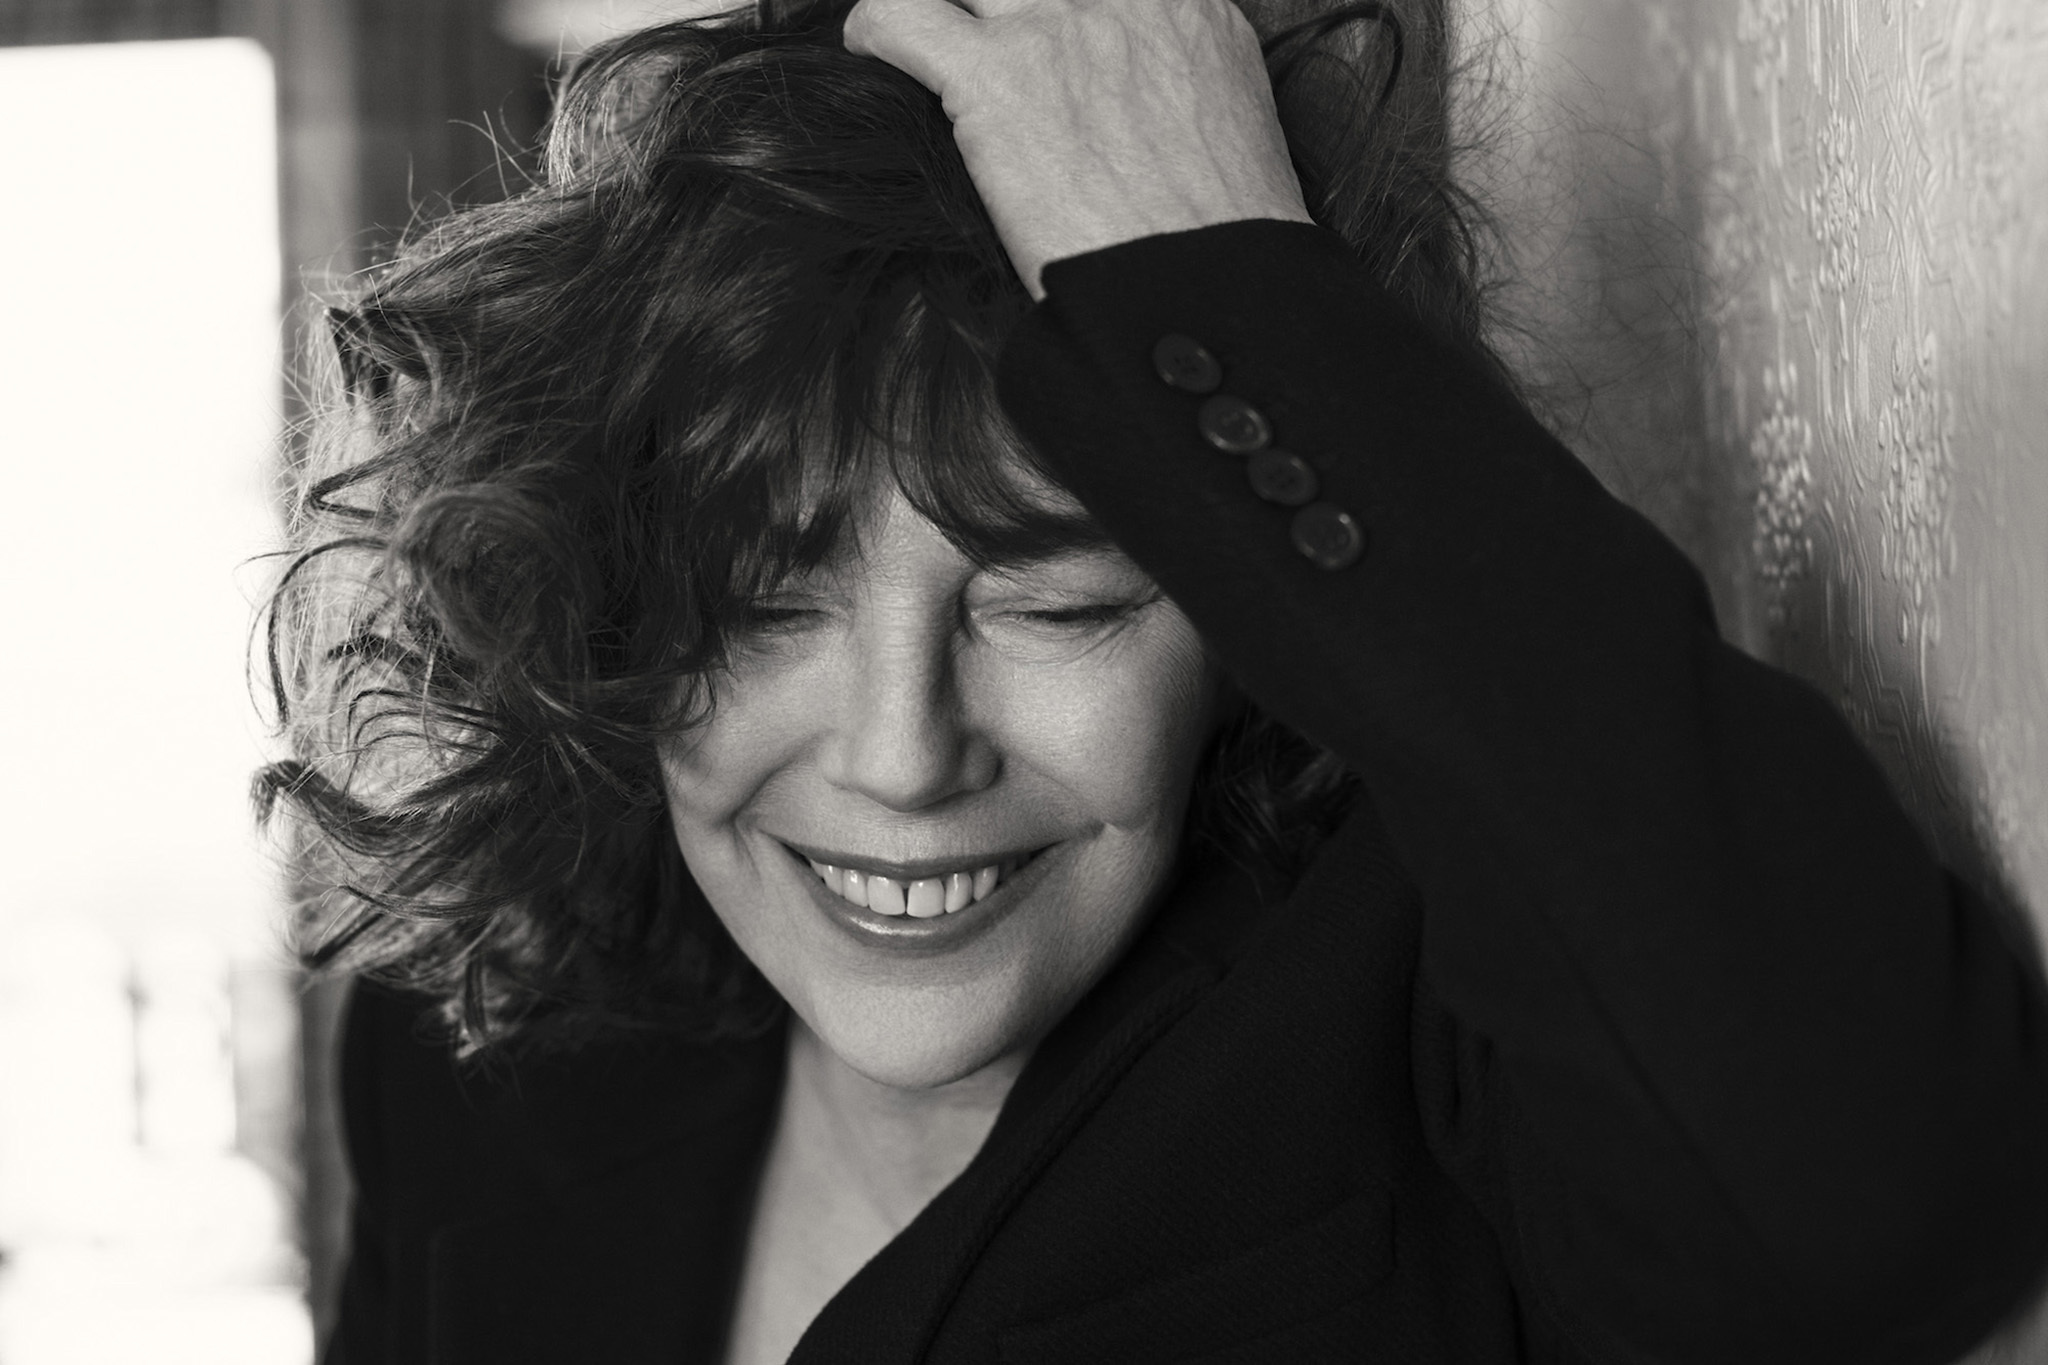 Jane Birkin on being a music, fashion and film icon